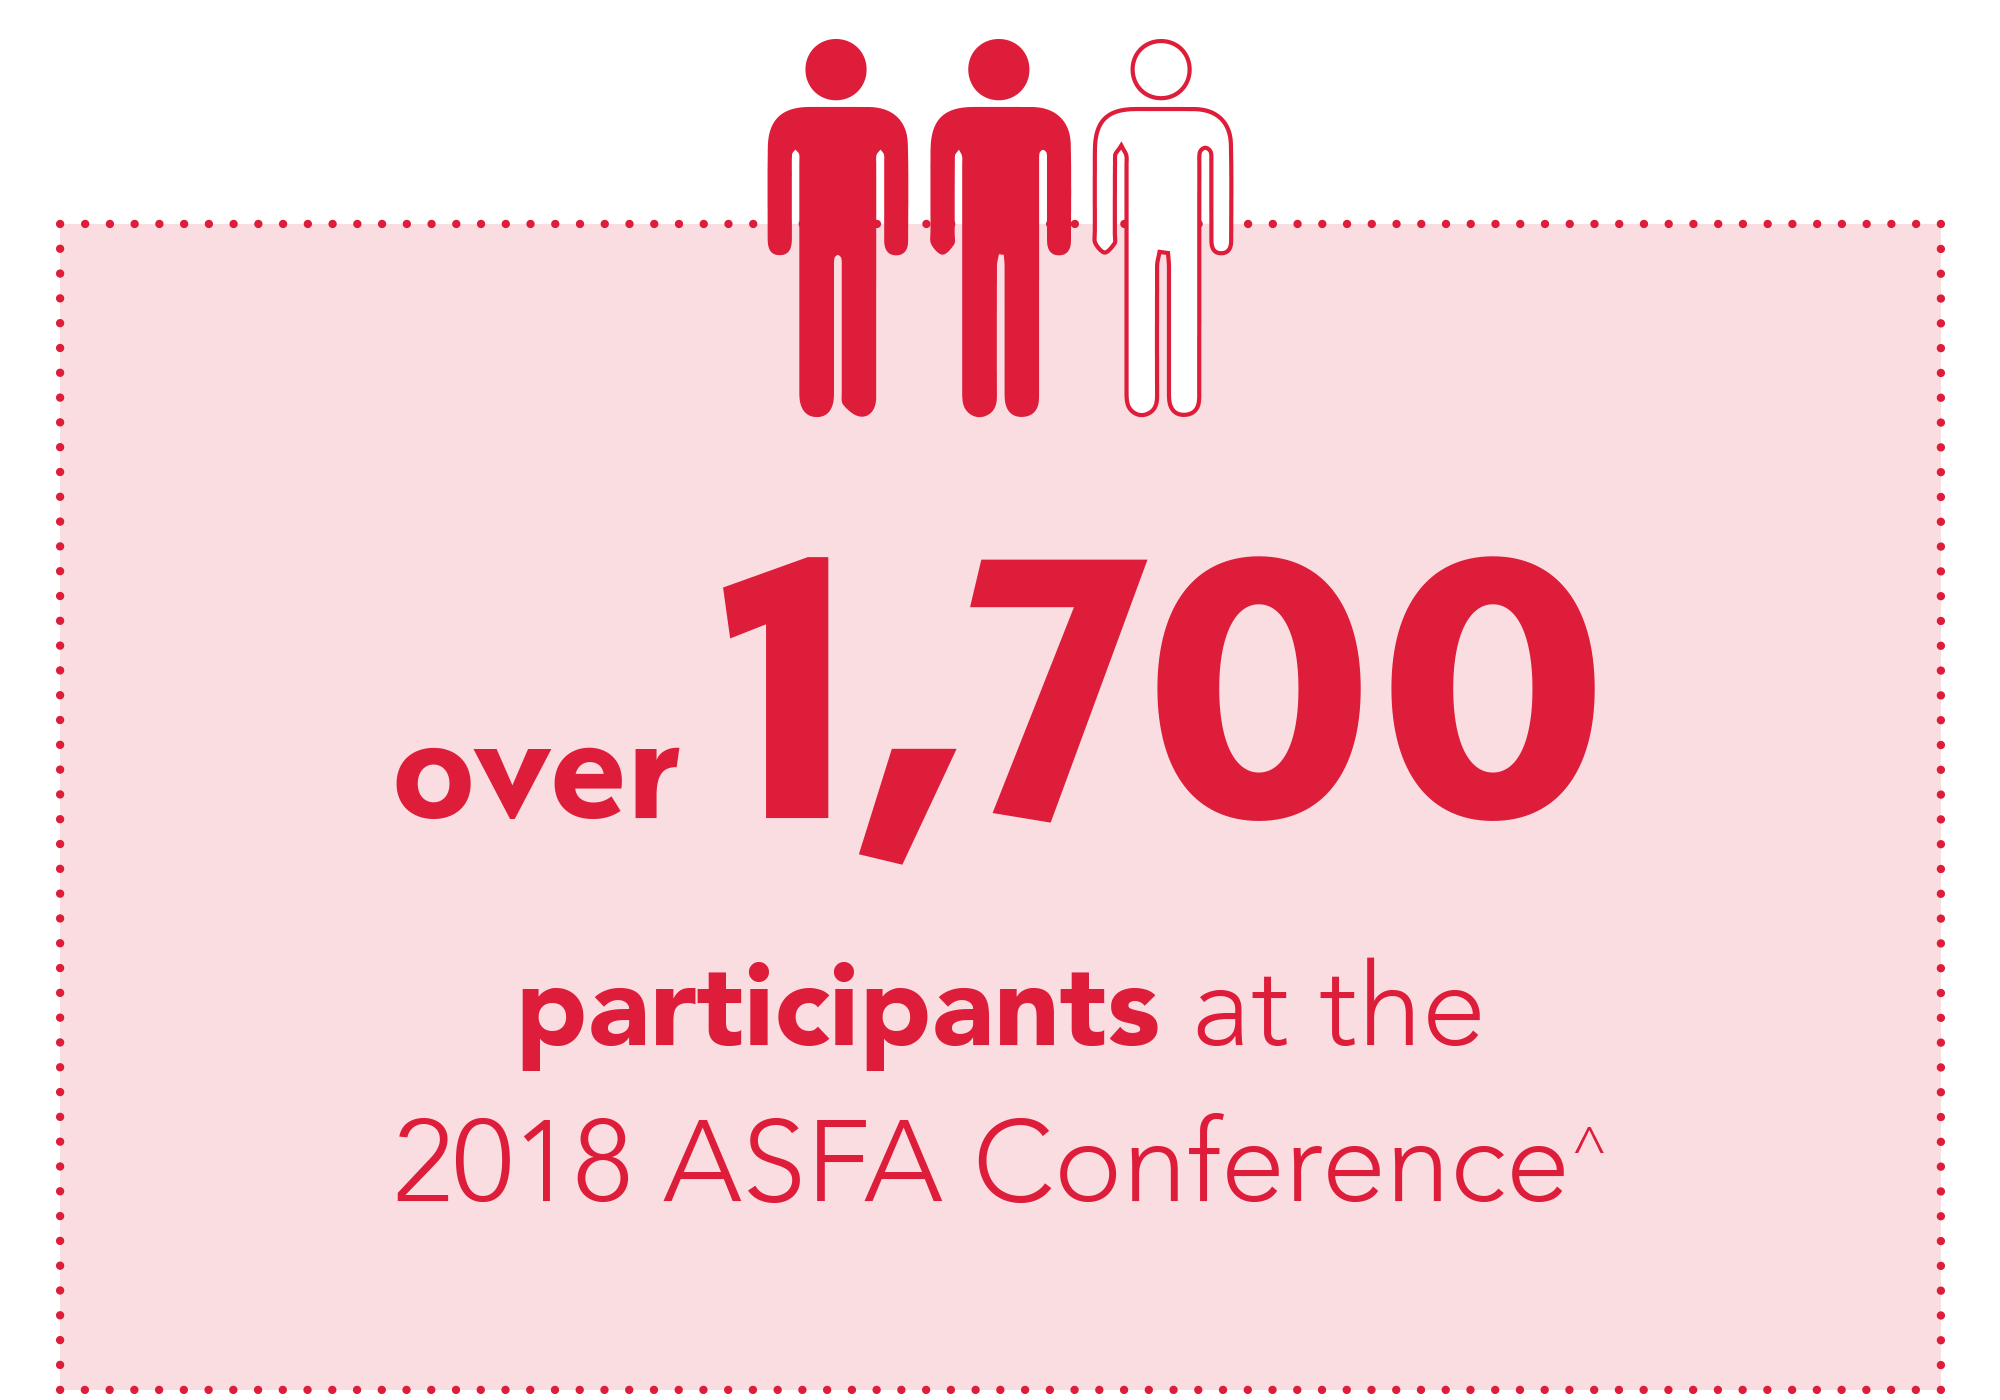 Over 1,700 participants at the 2018 ASFA Conference^